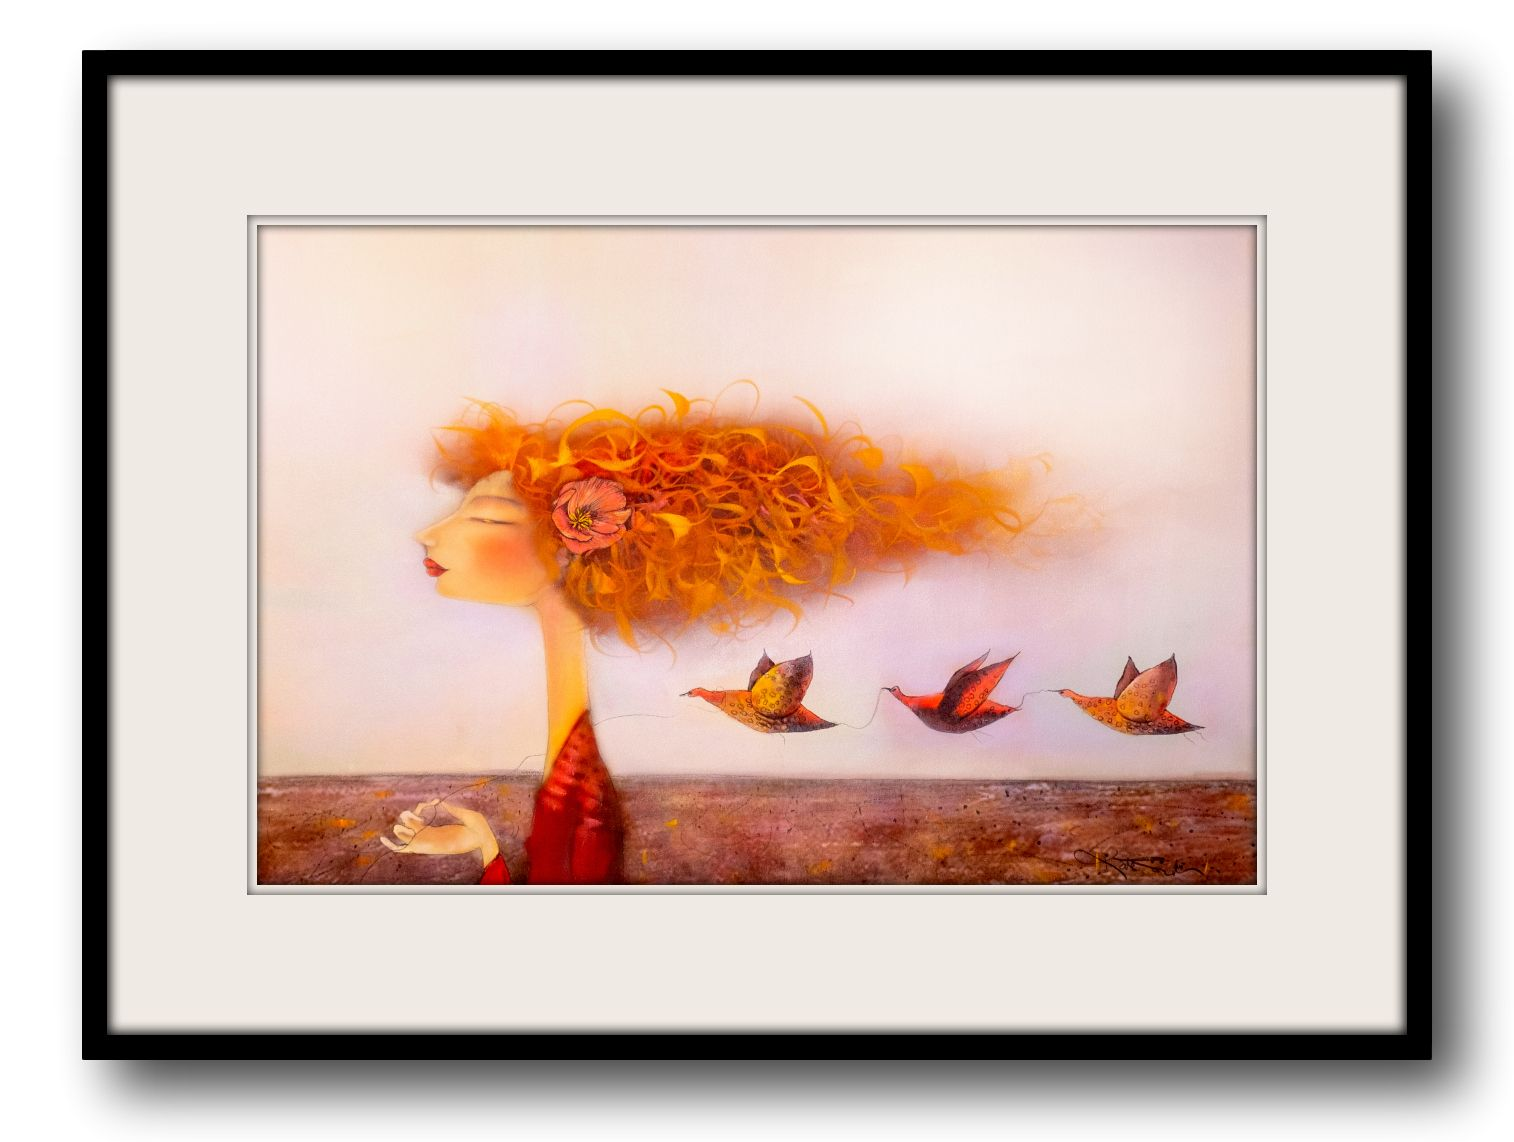 Kate Smith Painting ~ 'Flight of Fancy' - Gallery Salamanca Hobart Tasmania